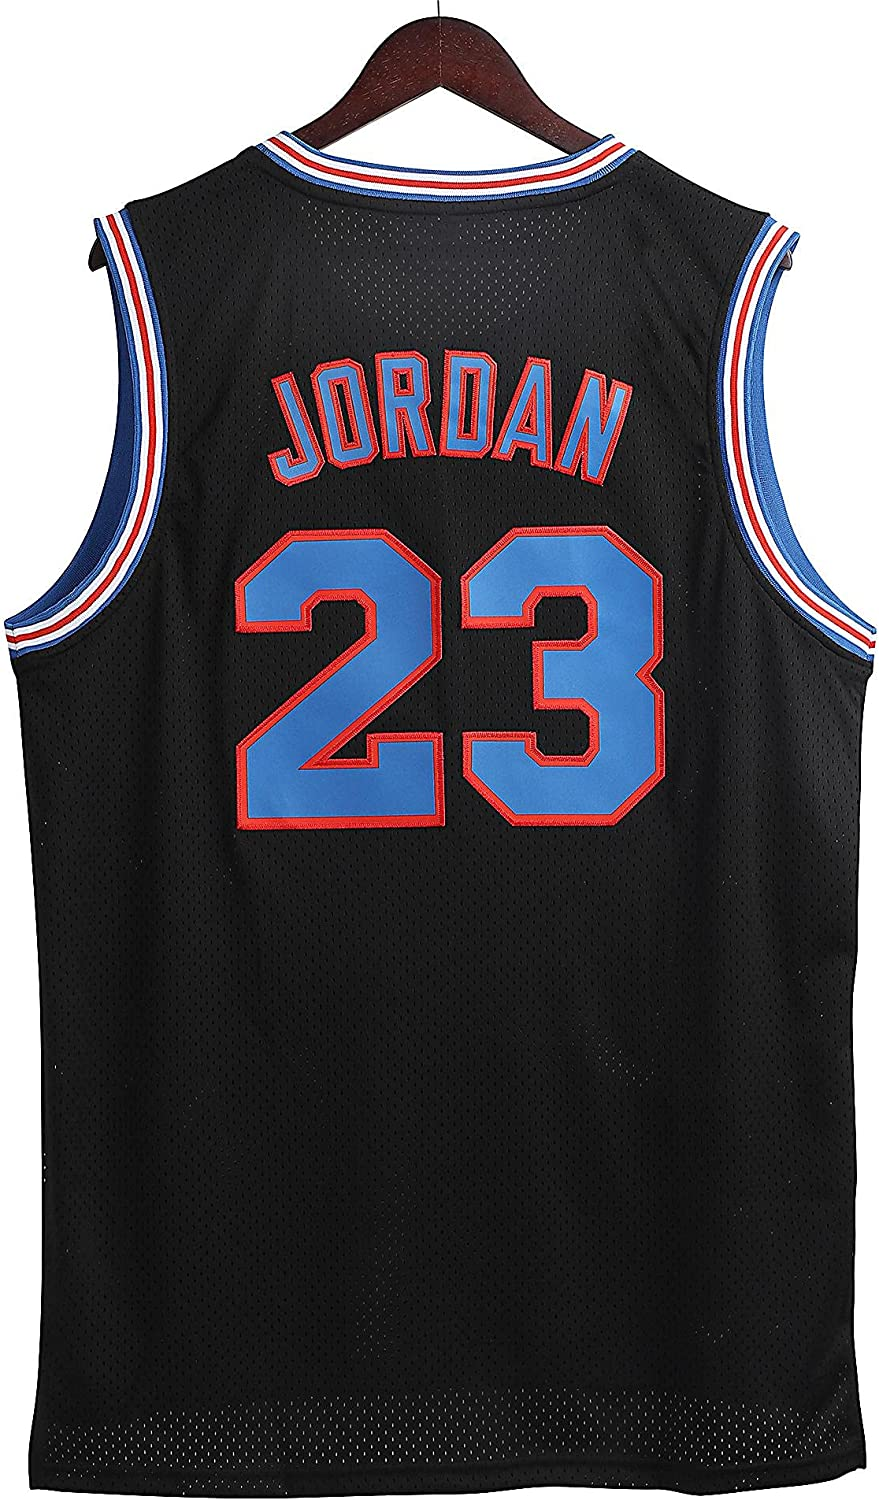 Chic Joias Mens 23# Space Movie Jersey Basketball Jersey 90S Hip Hop Stitched Clothing for Party White/Black/Blue: Clothing